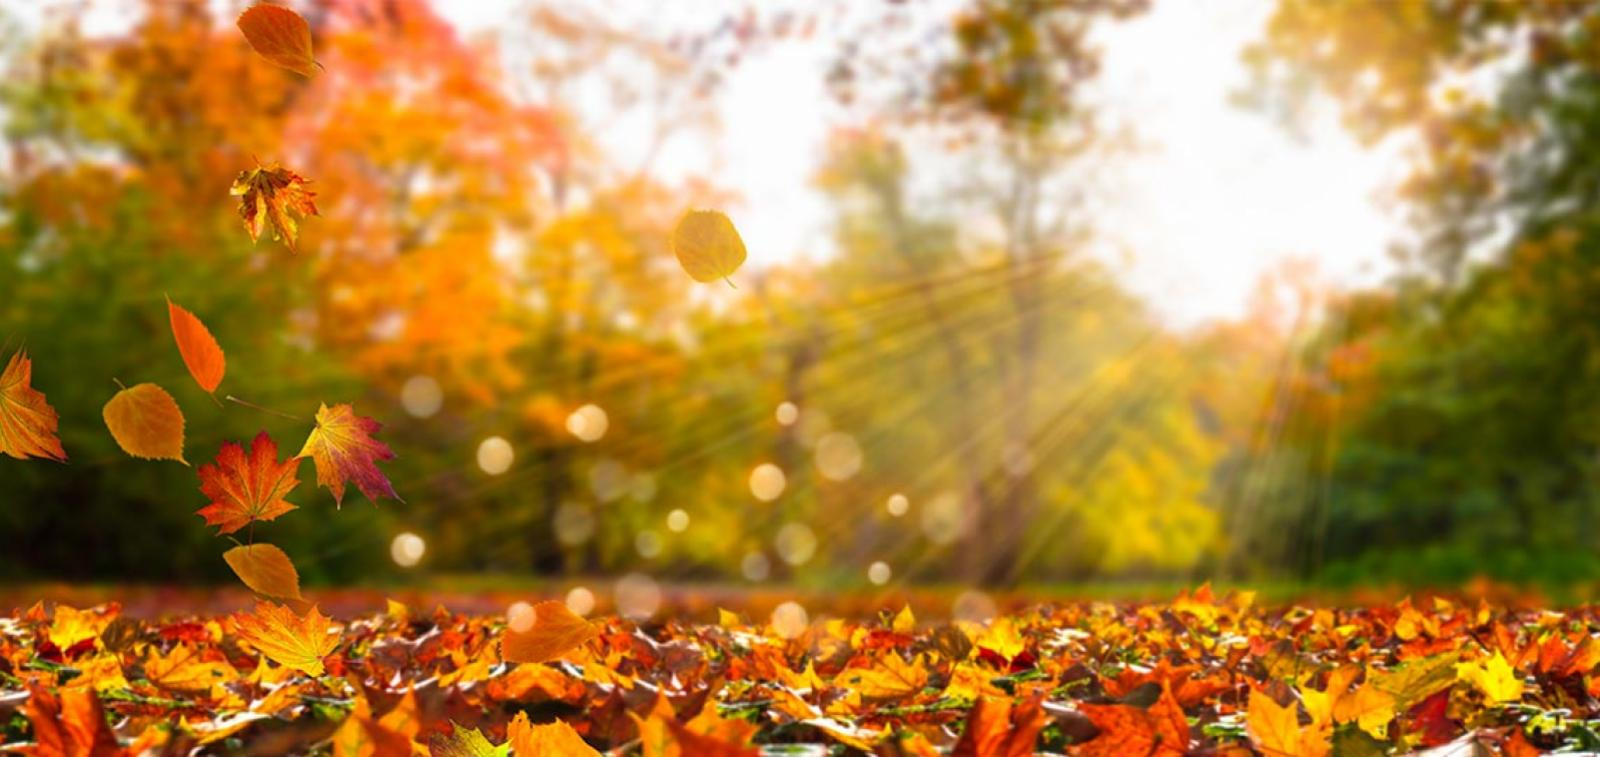 Sun shining through autumn trees with leaves on the ground